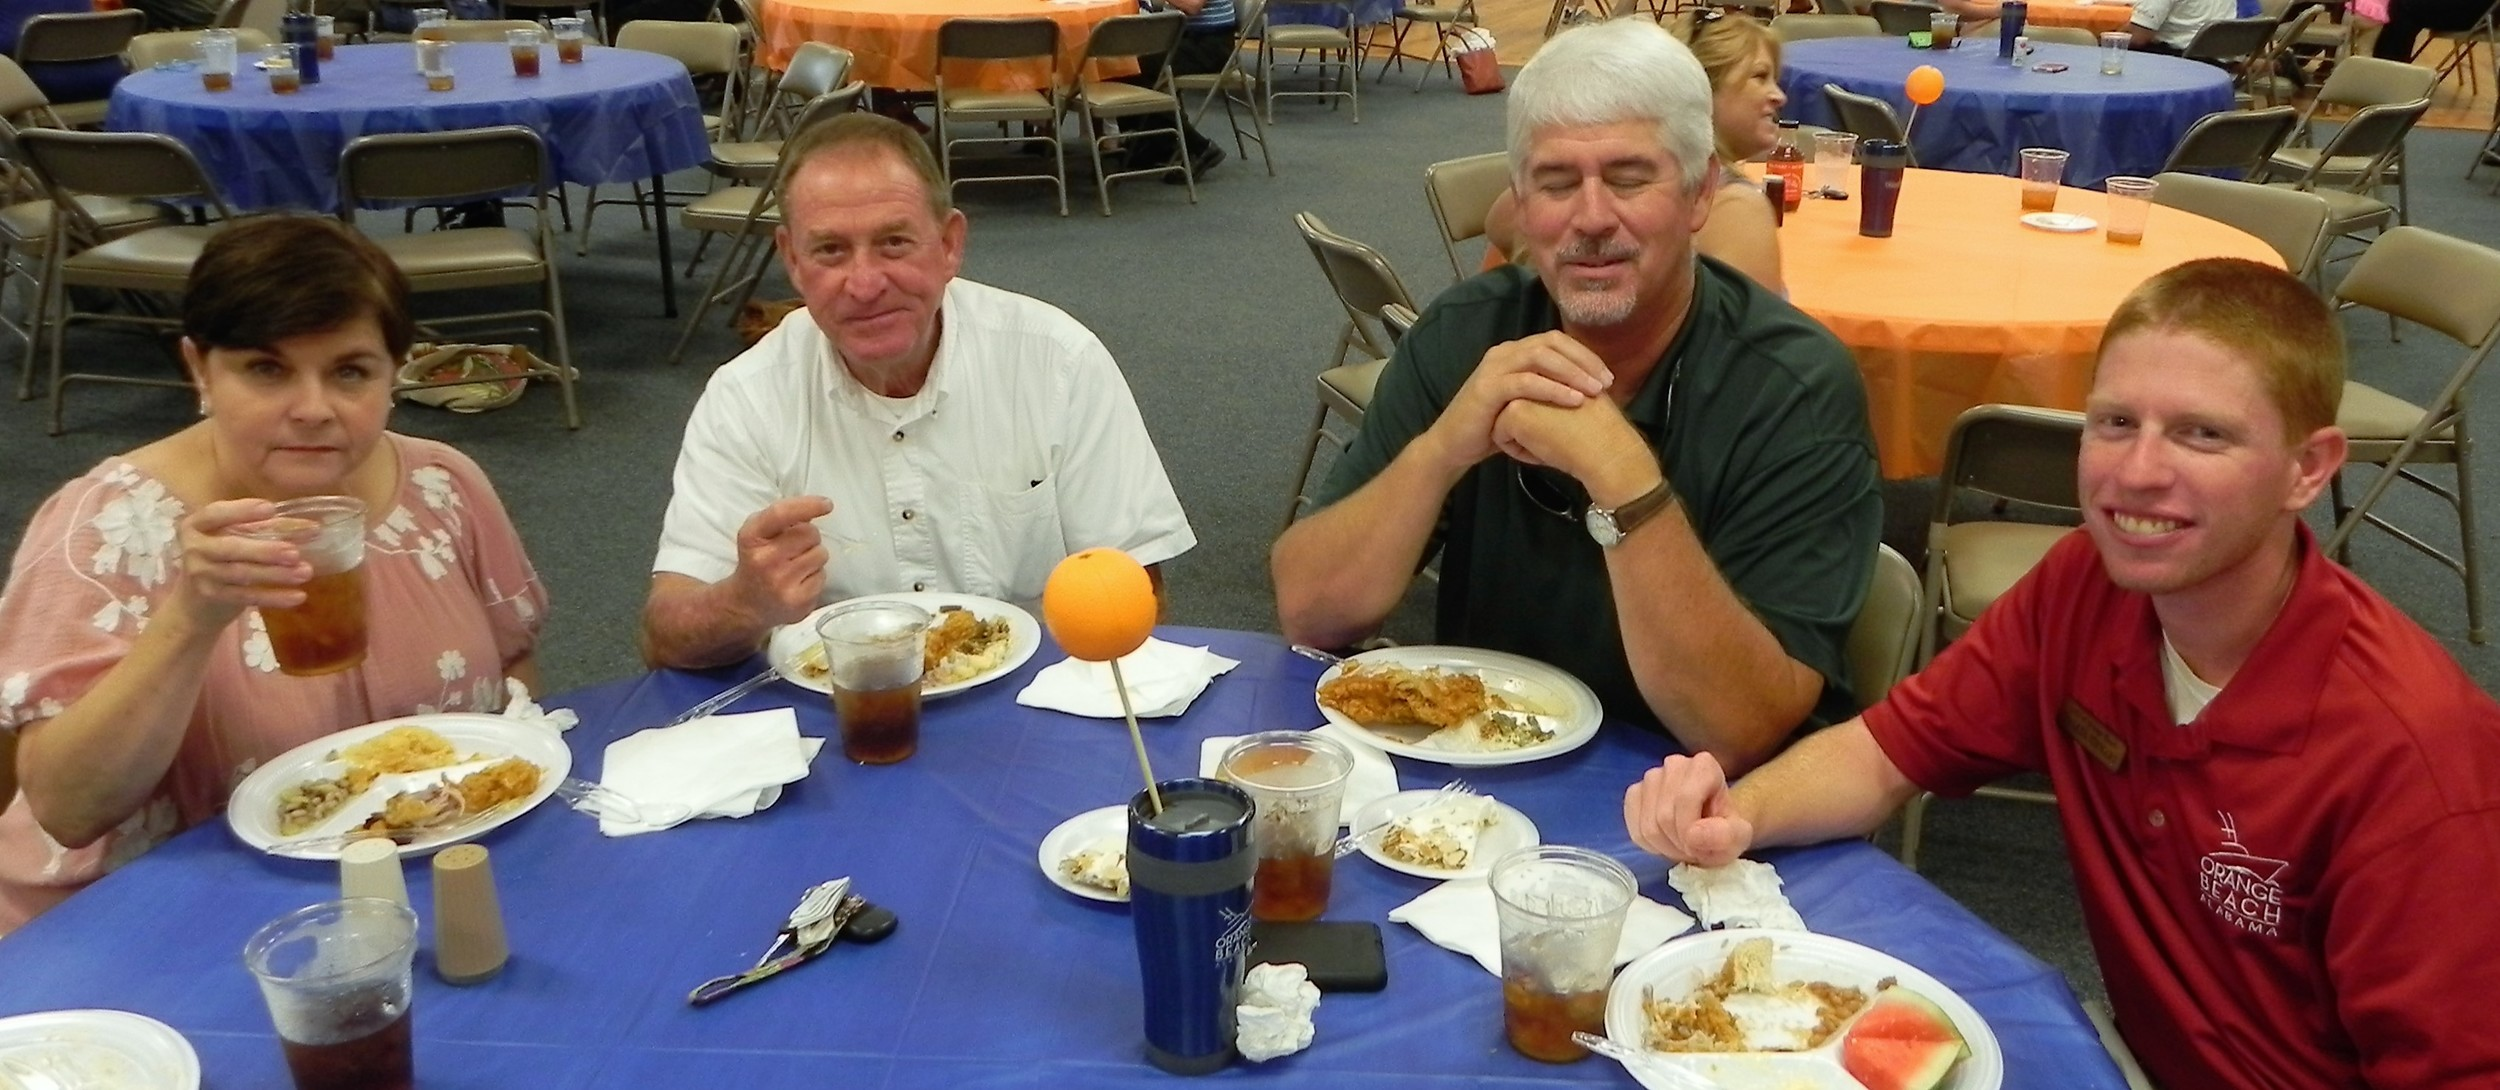 From left are Candy Martin, Danny Martin, Councilman Jeff Silvers and Walker Stewart.